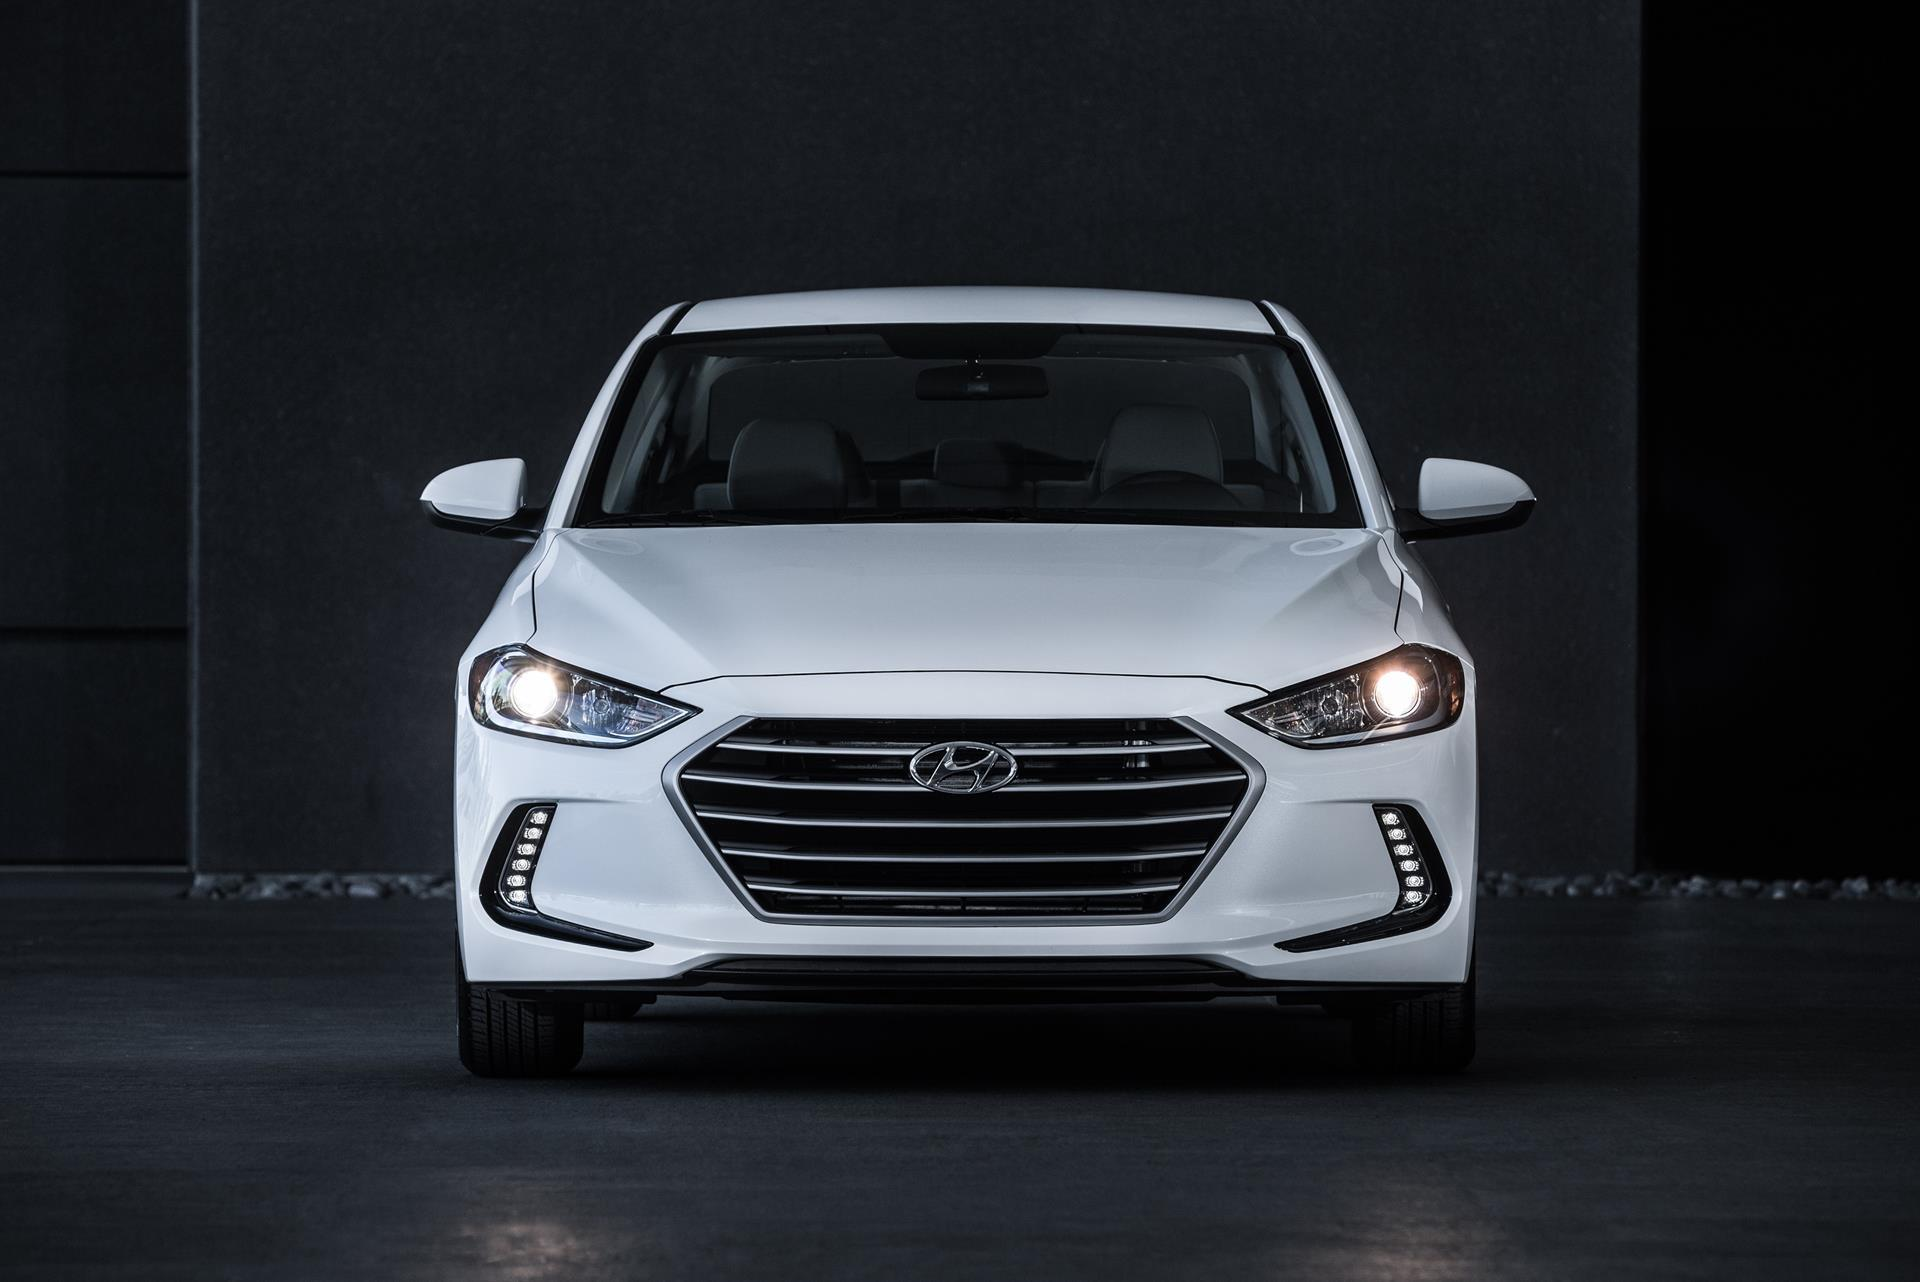 2017 Hyundai Elantra Eco News And Information